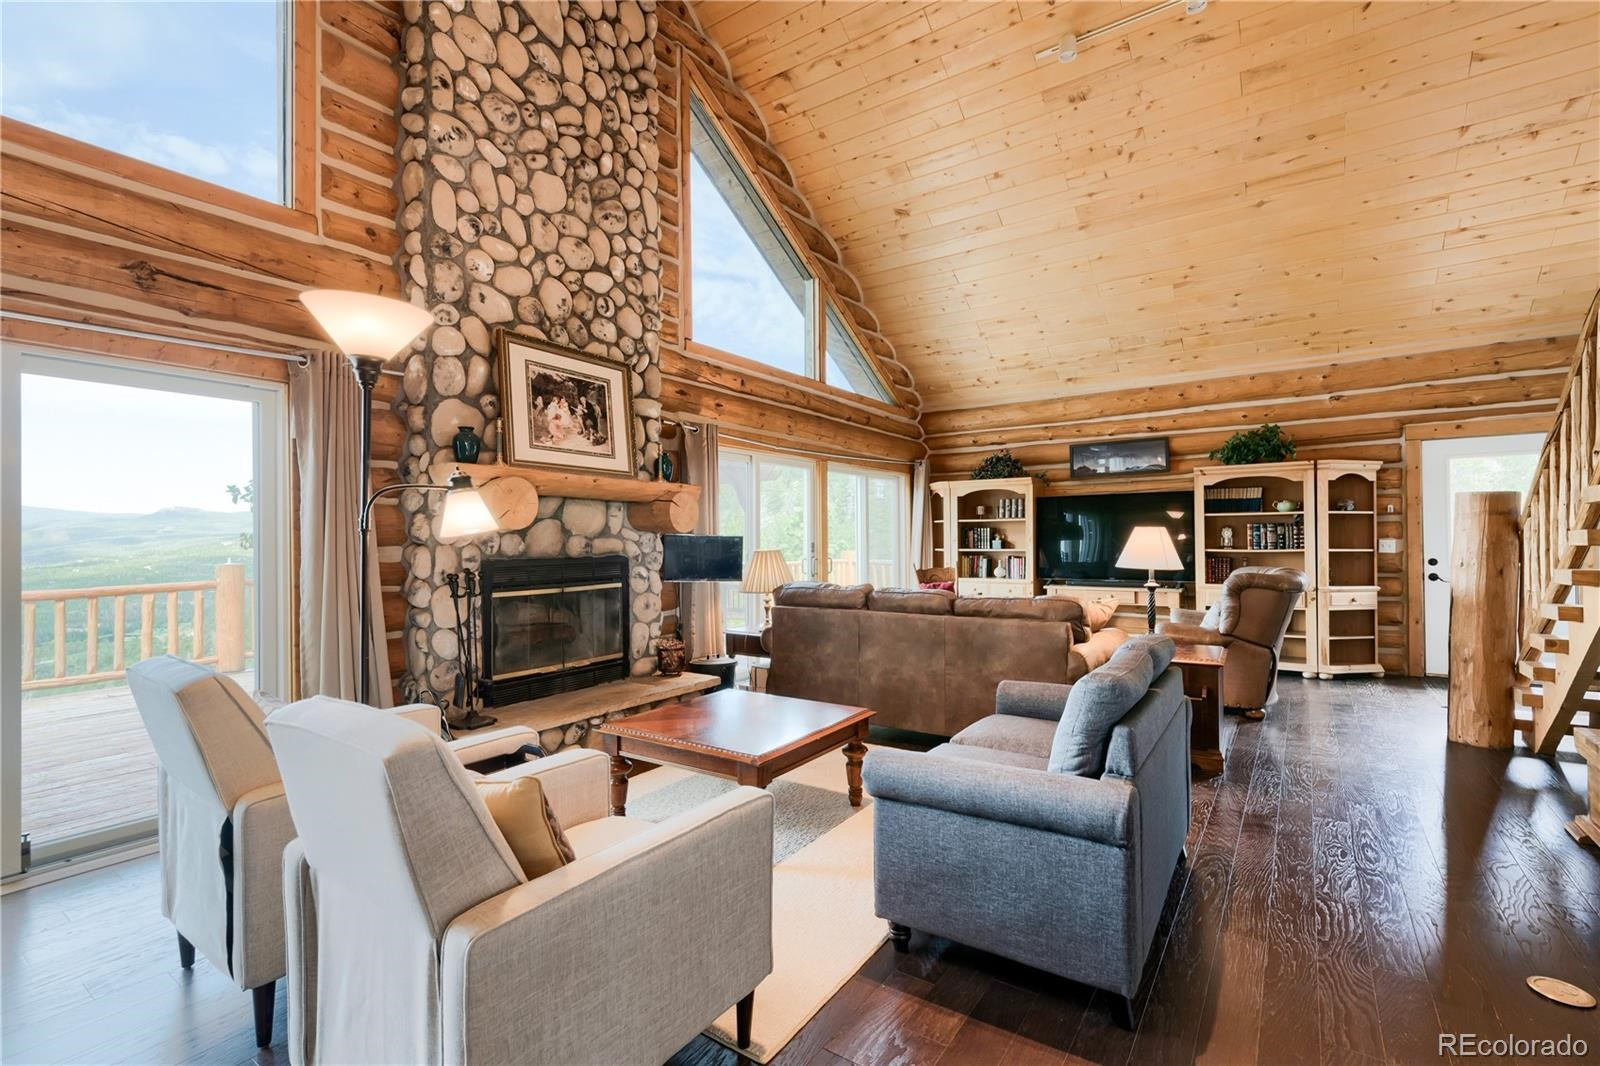 MLS# 3602520 - 12 - 107 Piegan Court, Red Feather Lakes, CO 80545